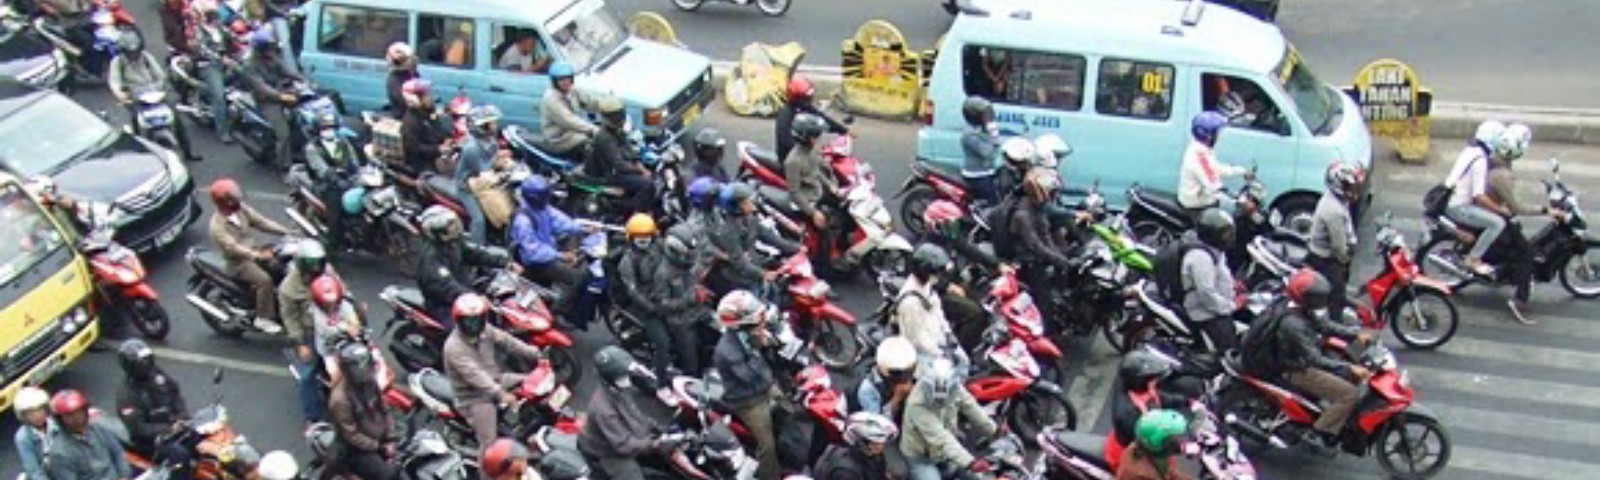 Many motorcycles and cars at a traffic intersection, without much regard for lanes. One rider is checking his phone.